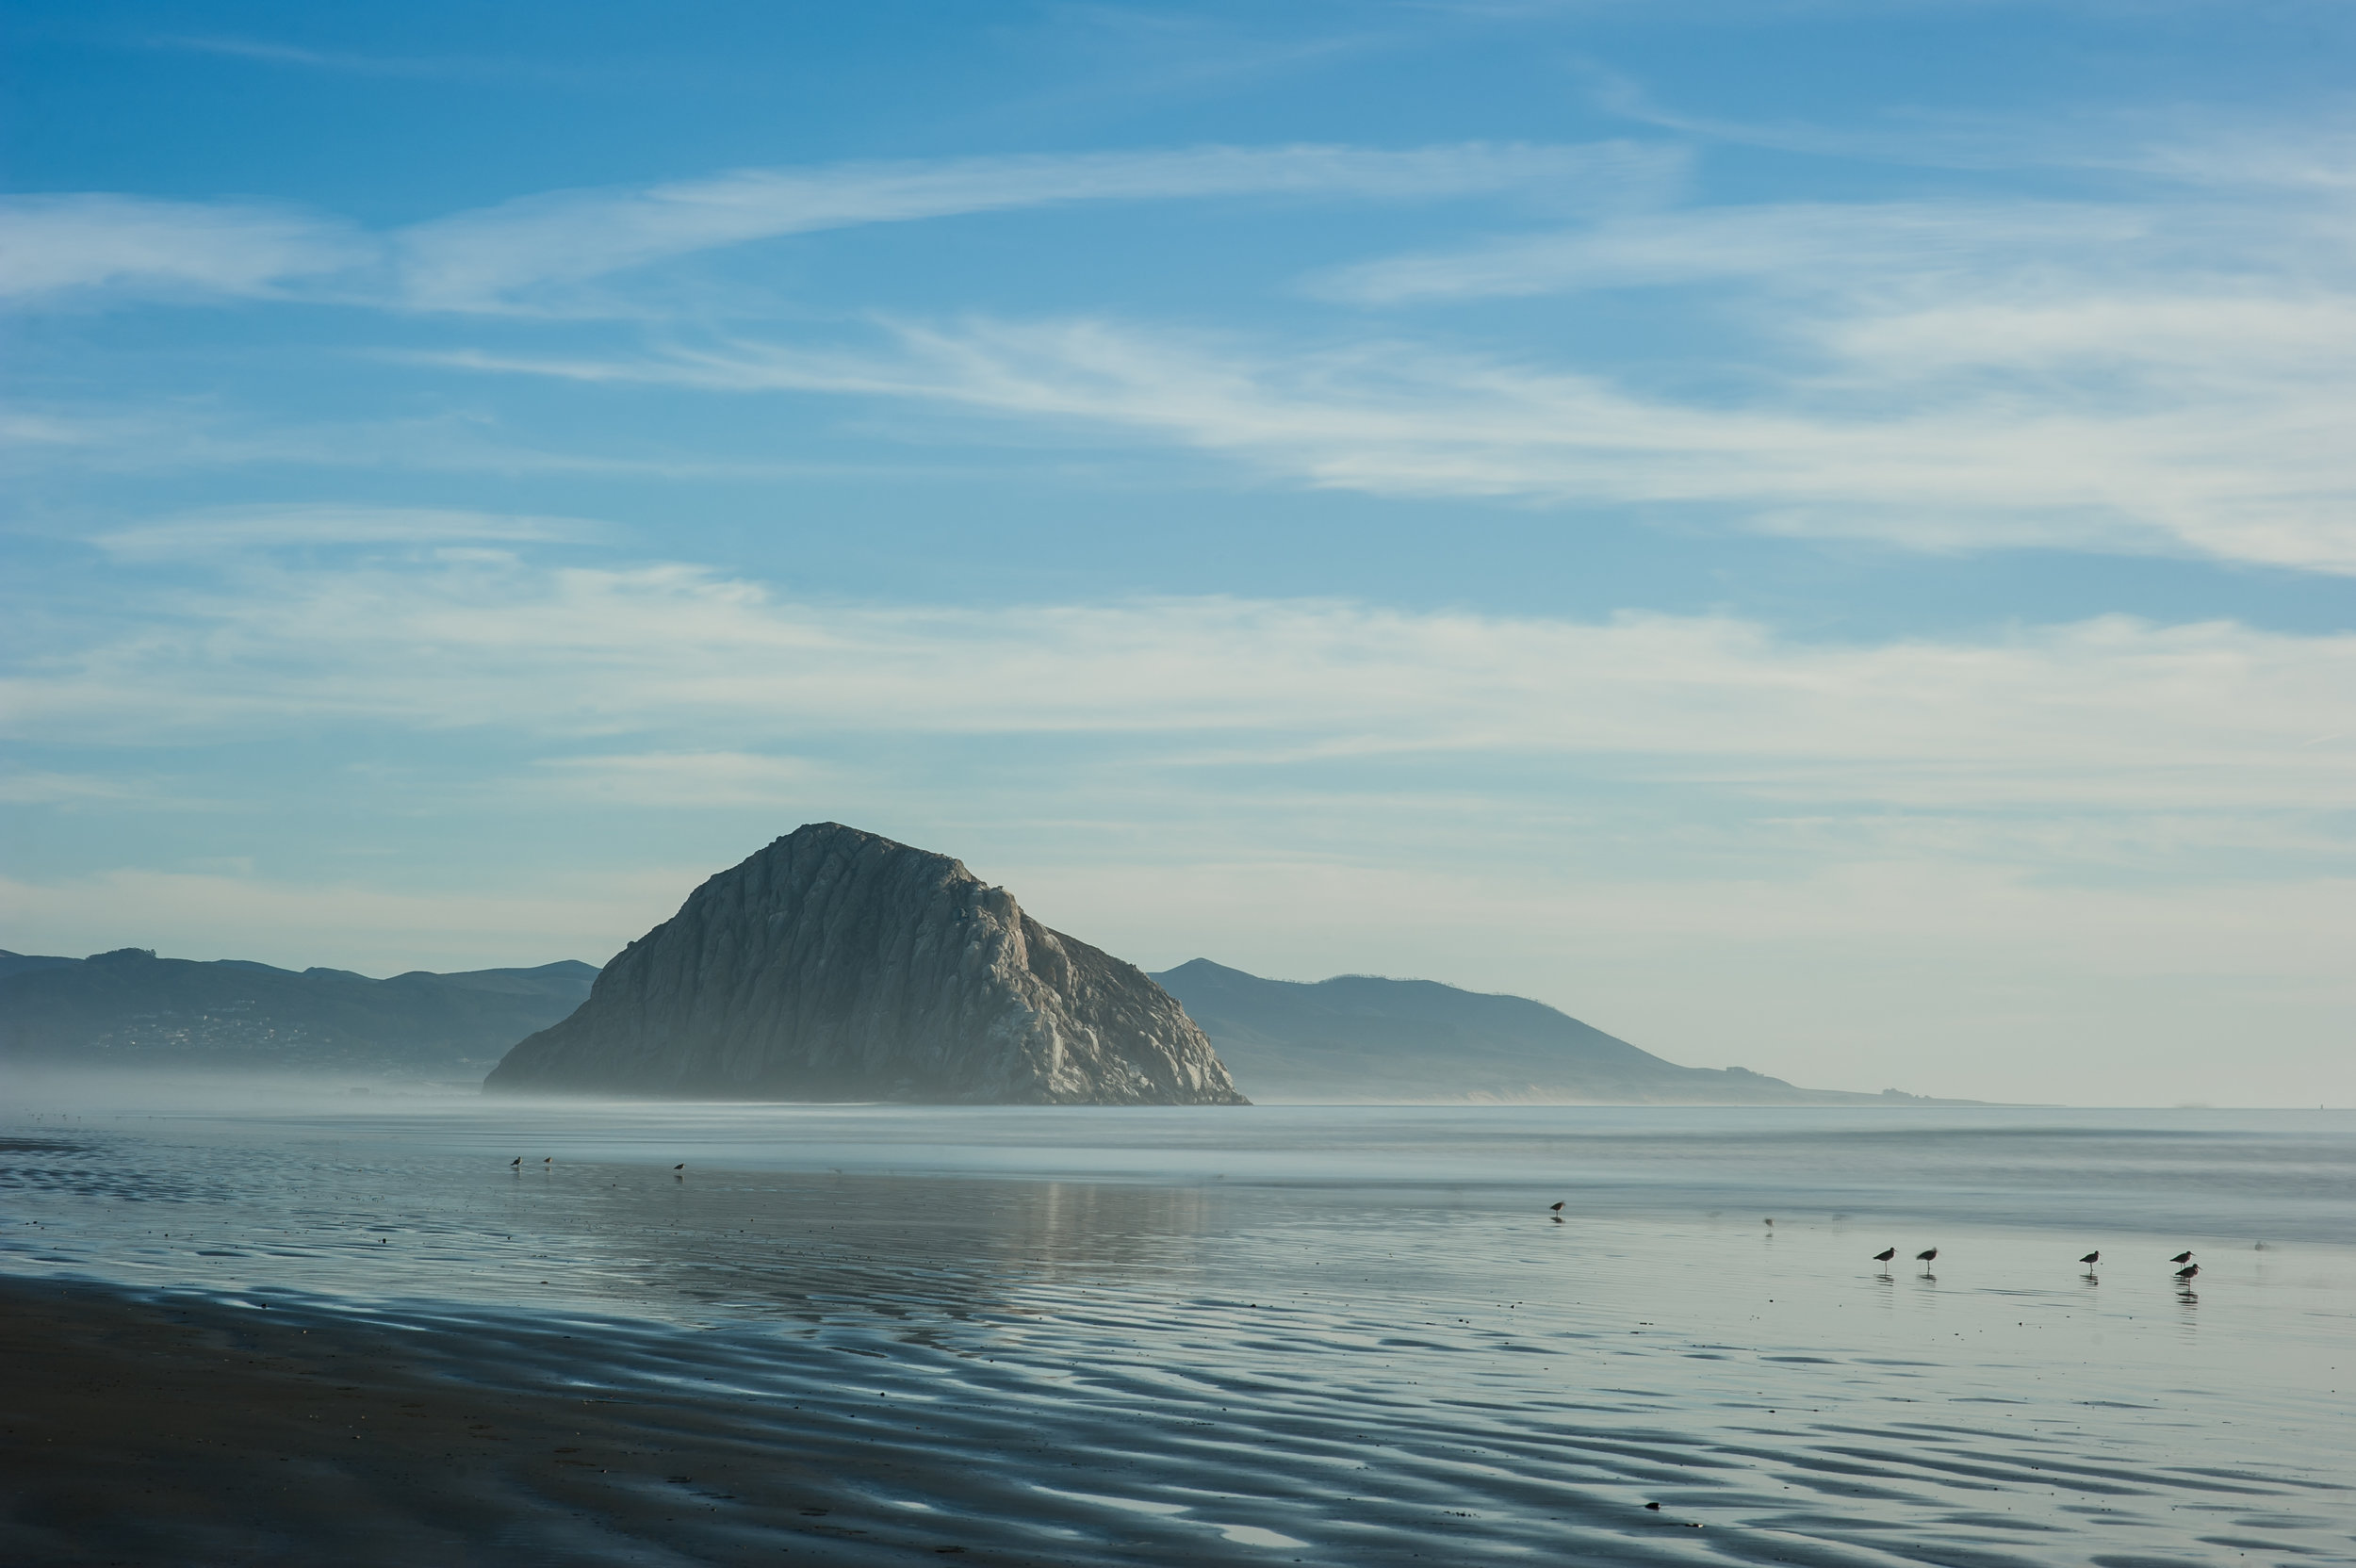 Morro Bay Rock  || 10s exposure